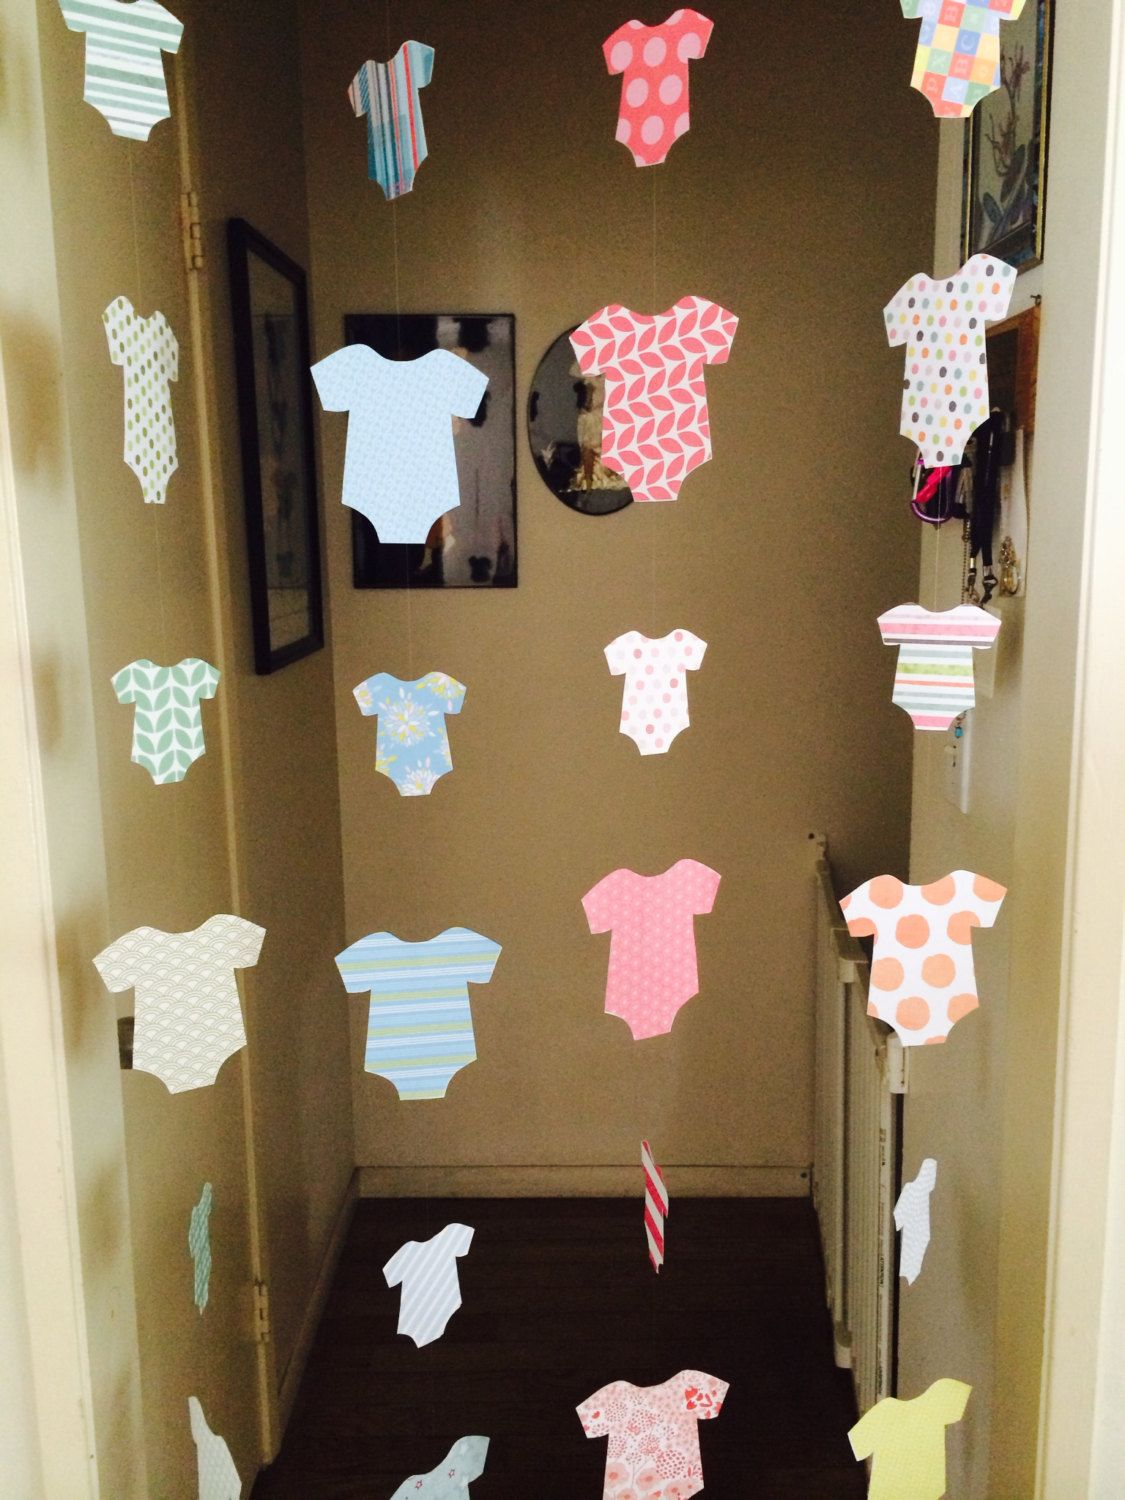 Baby Welcome Decoration Ideas : welcome, decoration, ideas, Decoration, Ideas, Welcome